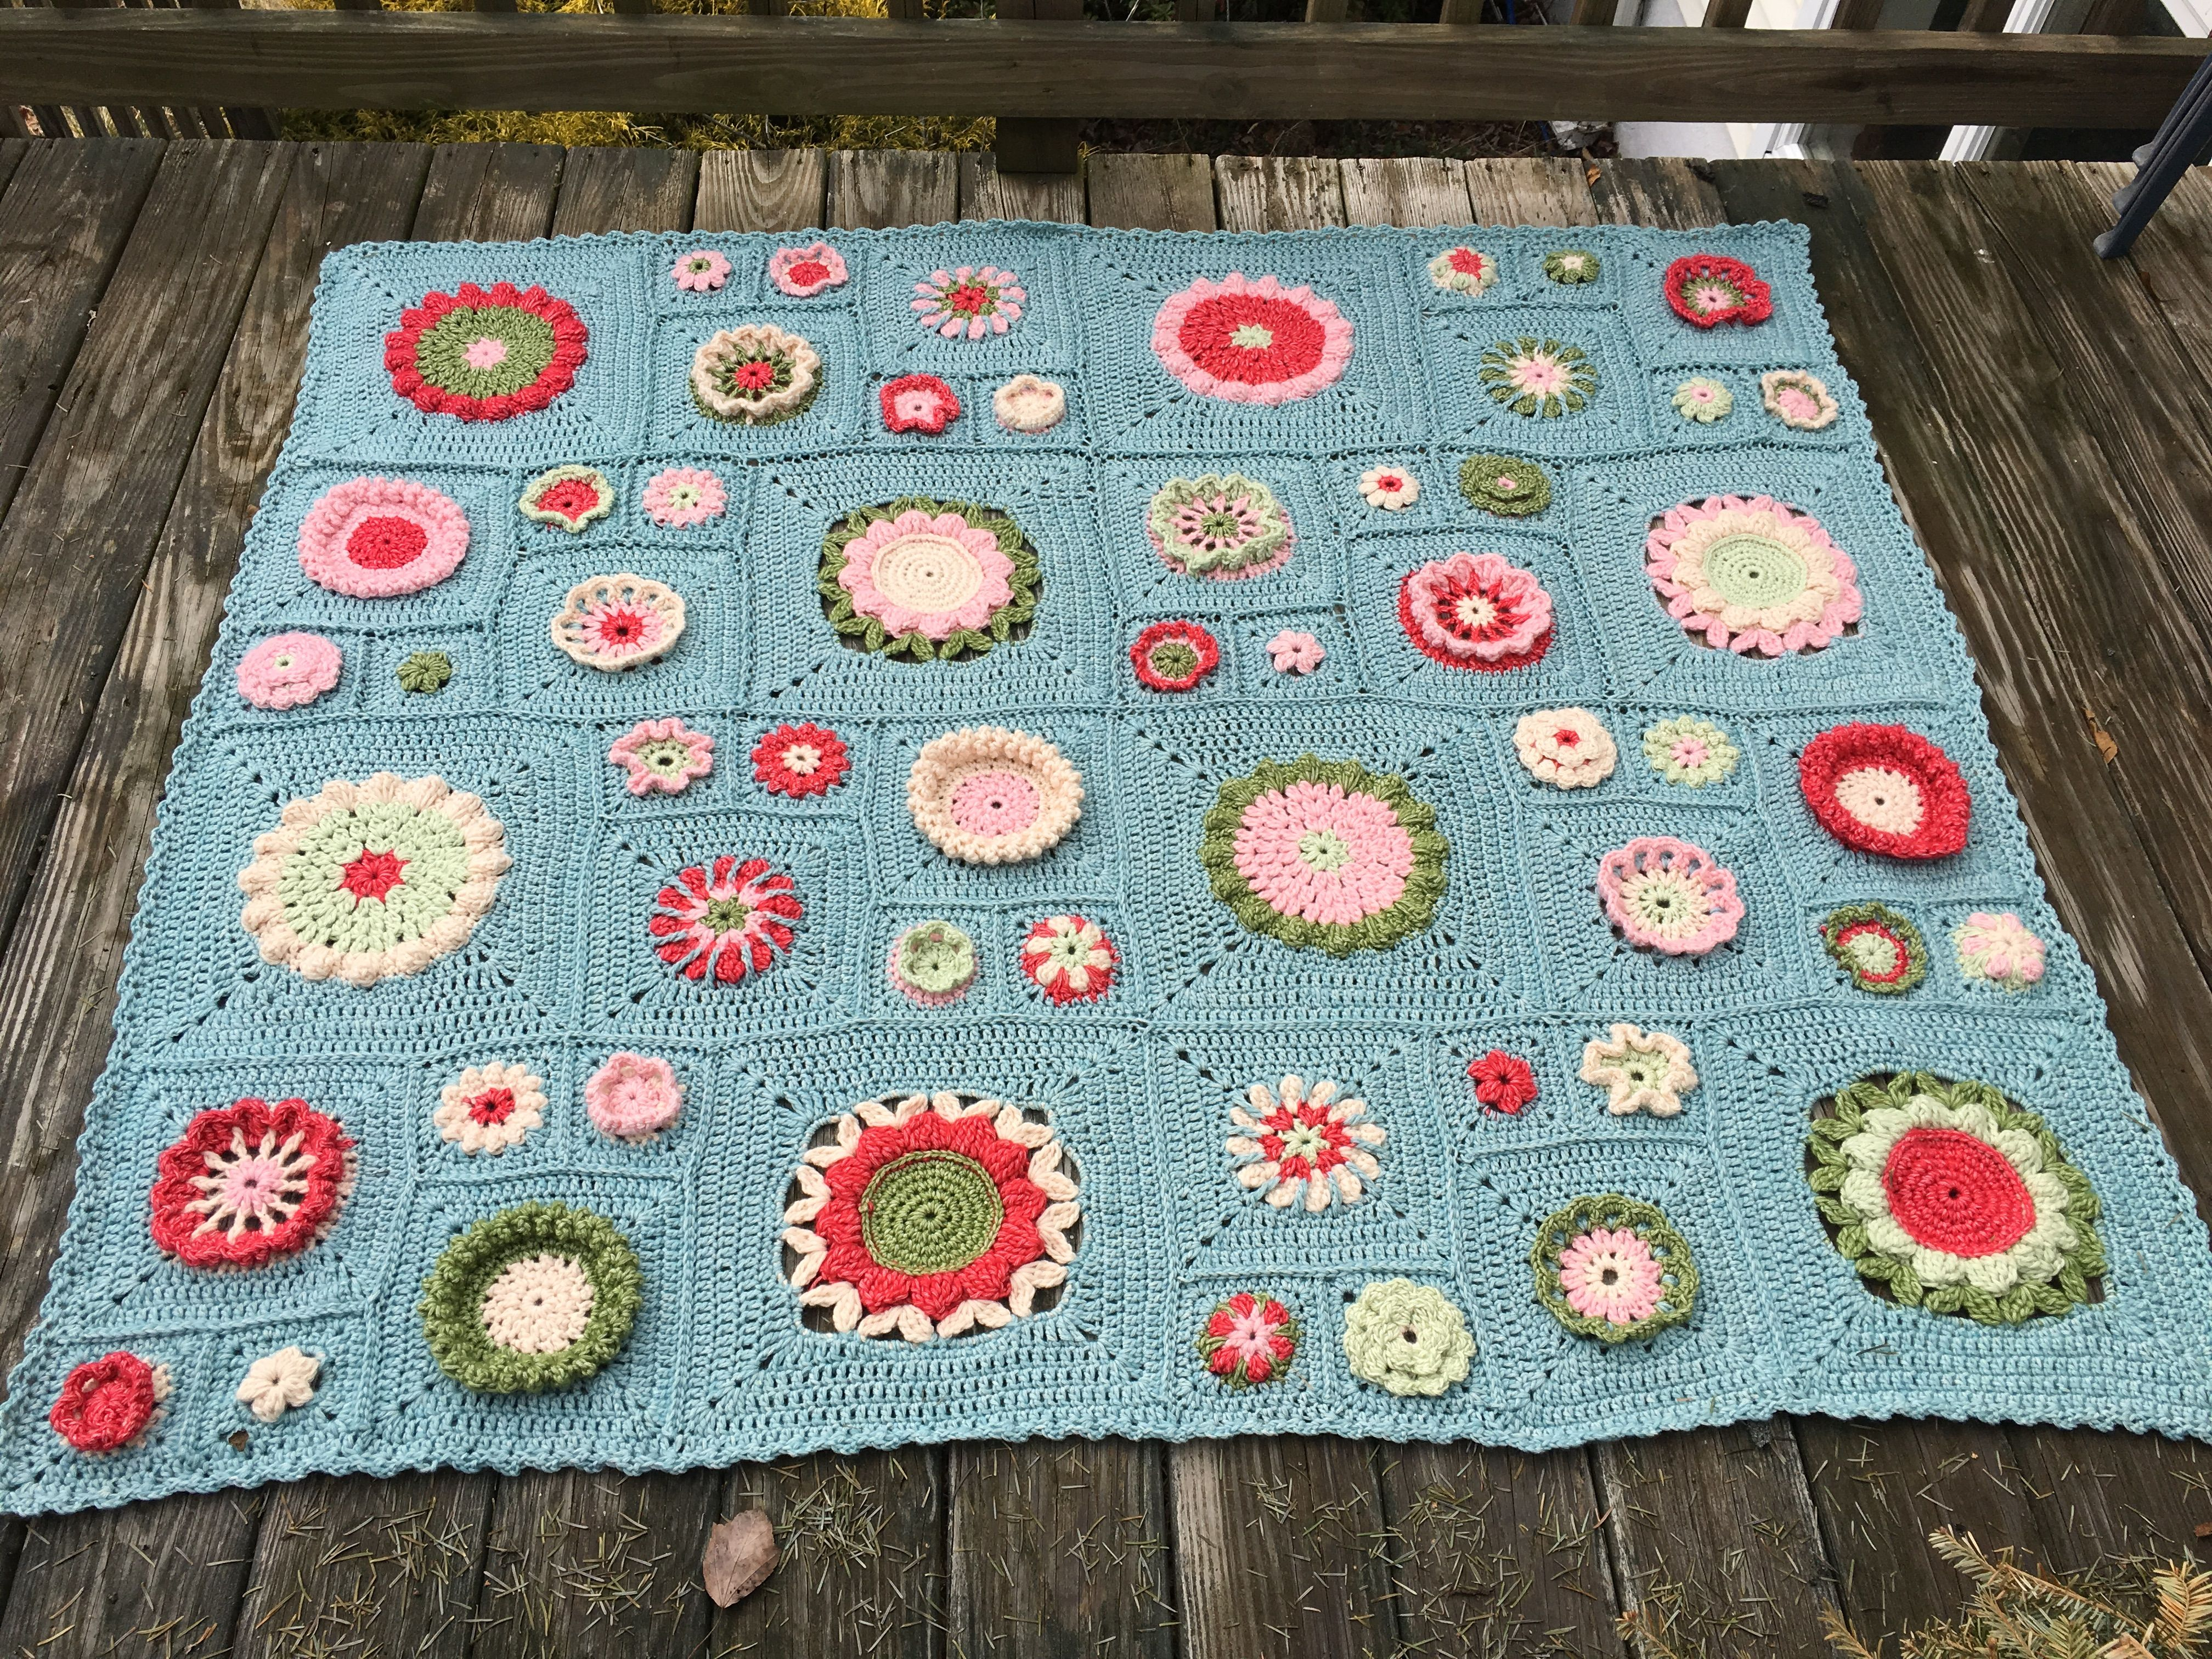 Free pattern april 1 2016 crochet a long to the garden free pattern april 1 2016 crochet a long to the garden bankloansurffo Image collections